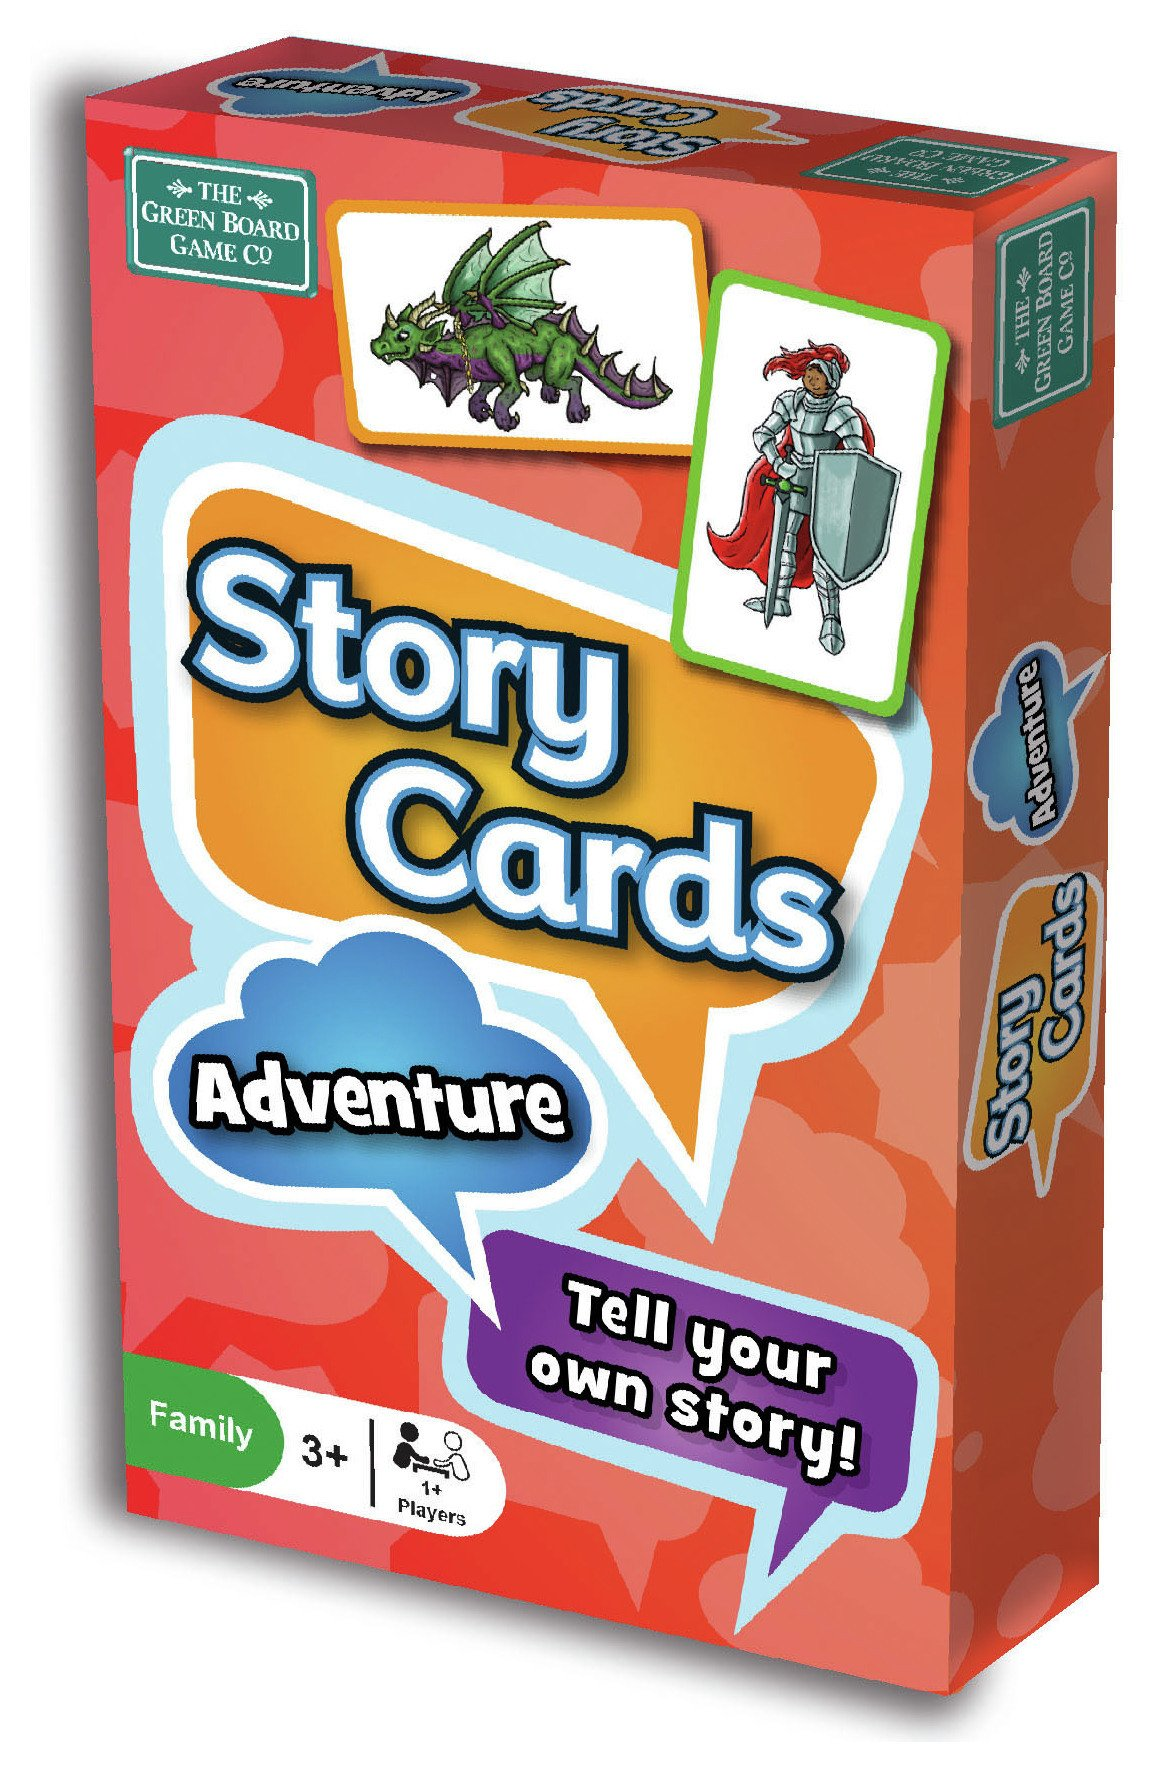 Image of Green Board Games Story Cards Adventure Card Game.